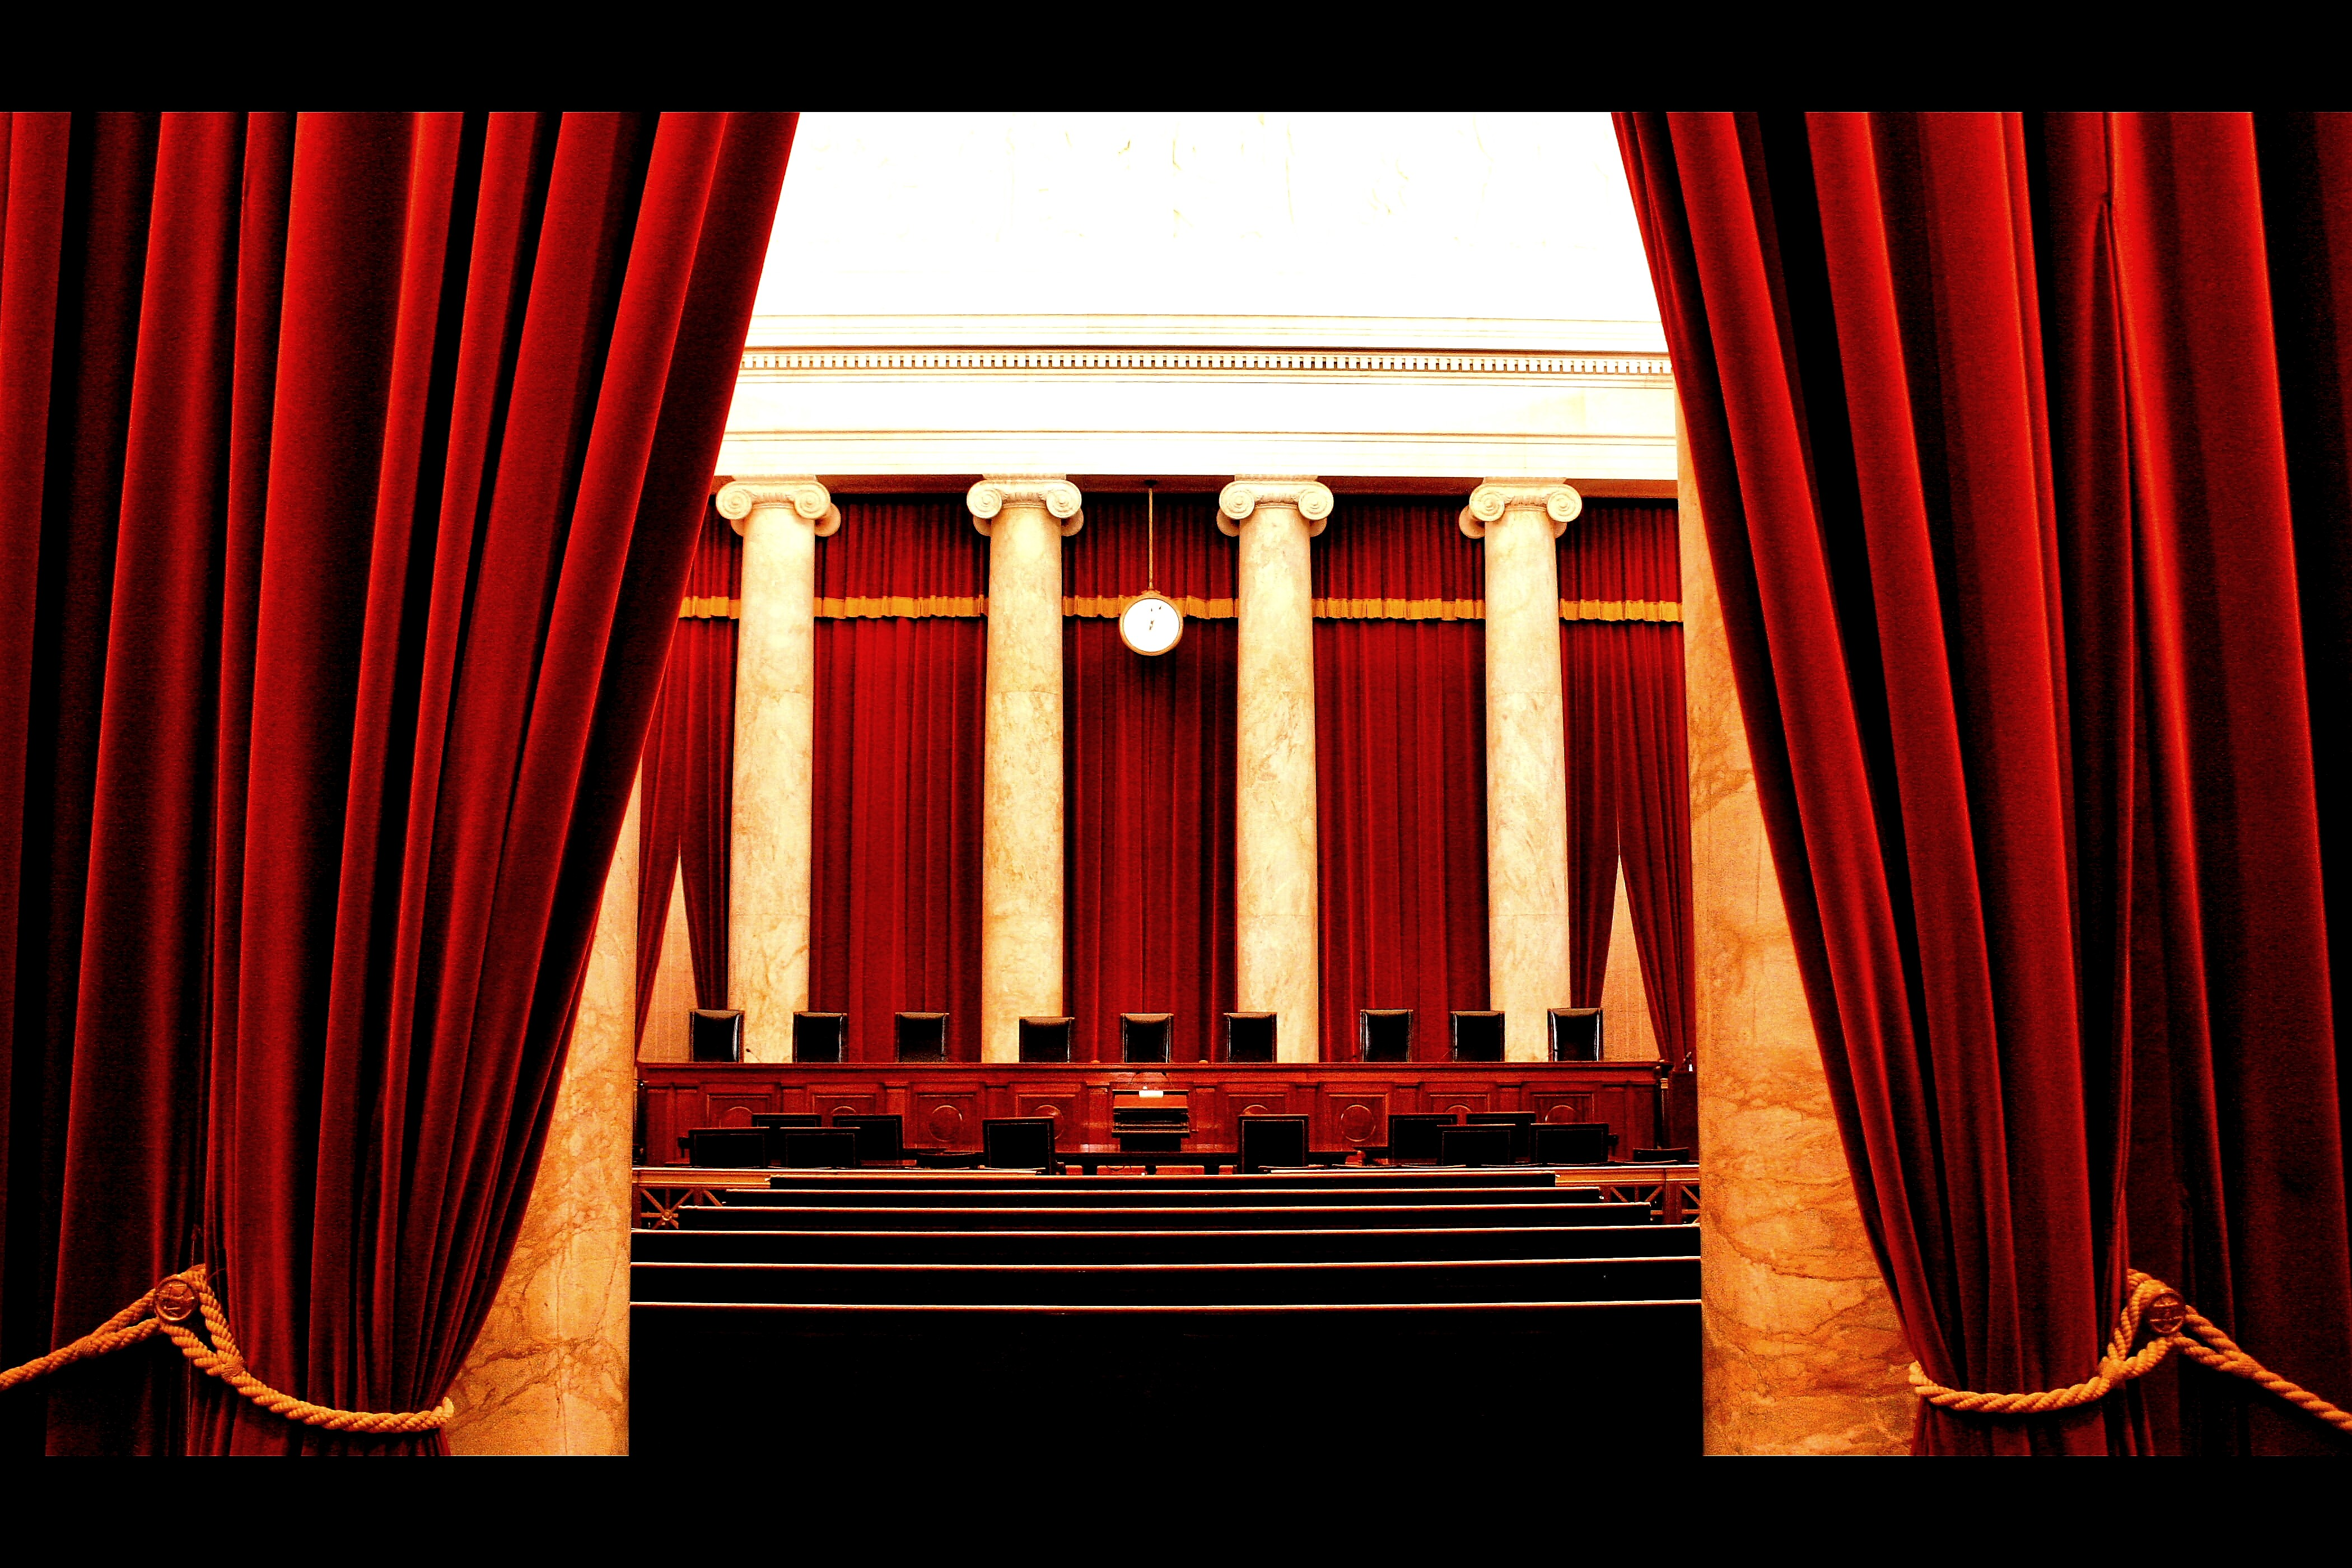 A Conservative Supreme Court Could >> The Conservative Supreme Court Could Remake American Citizenship